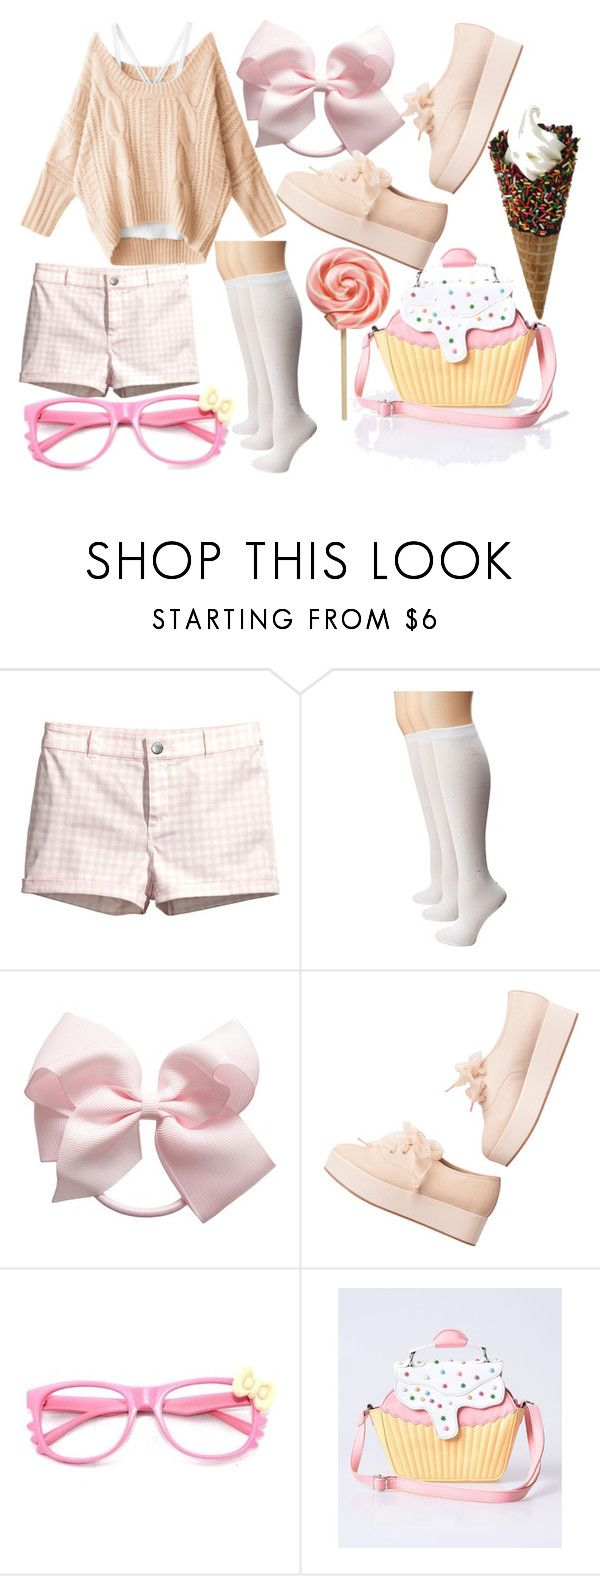 """Untitled #317"" by echorose-1 on Polyvore featuring H&M, Sperry, Monki and Hello Kitty"